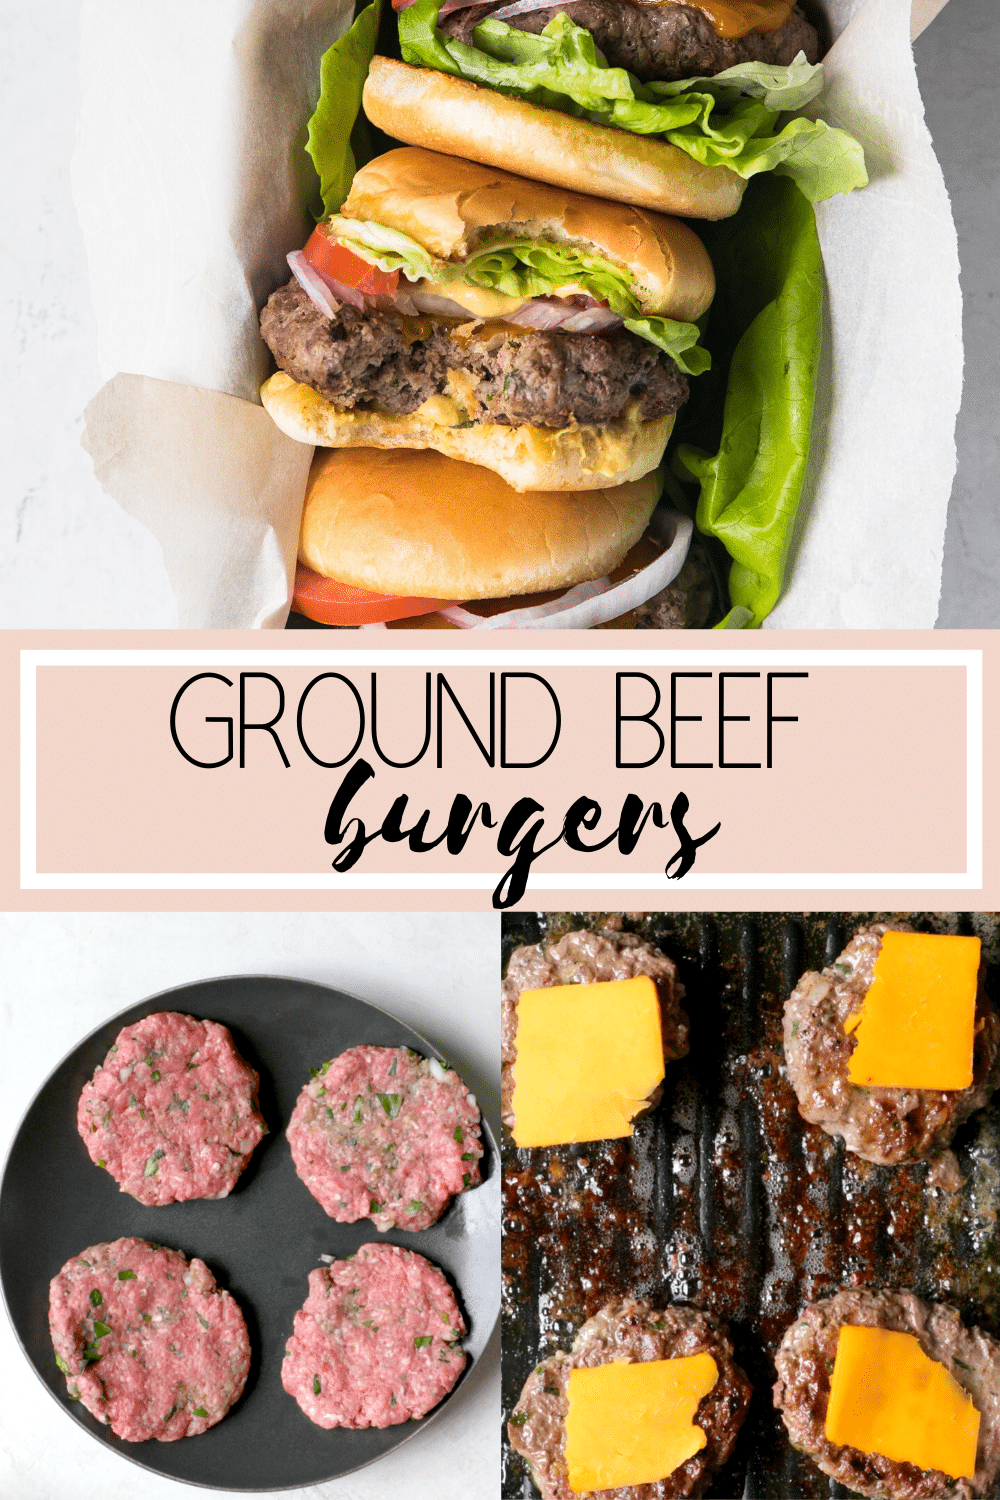 A Classic Crowd Pleasing Ground Beef Burger I Call It The Purist S Burger Incredibly Tasty Moist And In 2020 Burger Recipes Beef Beef Burgers Healthy Burger Recipes